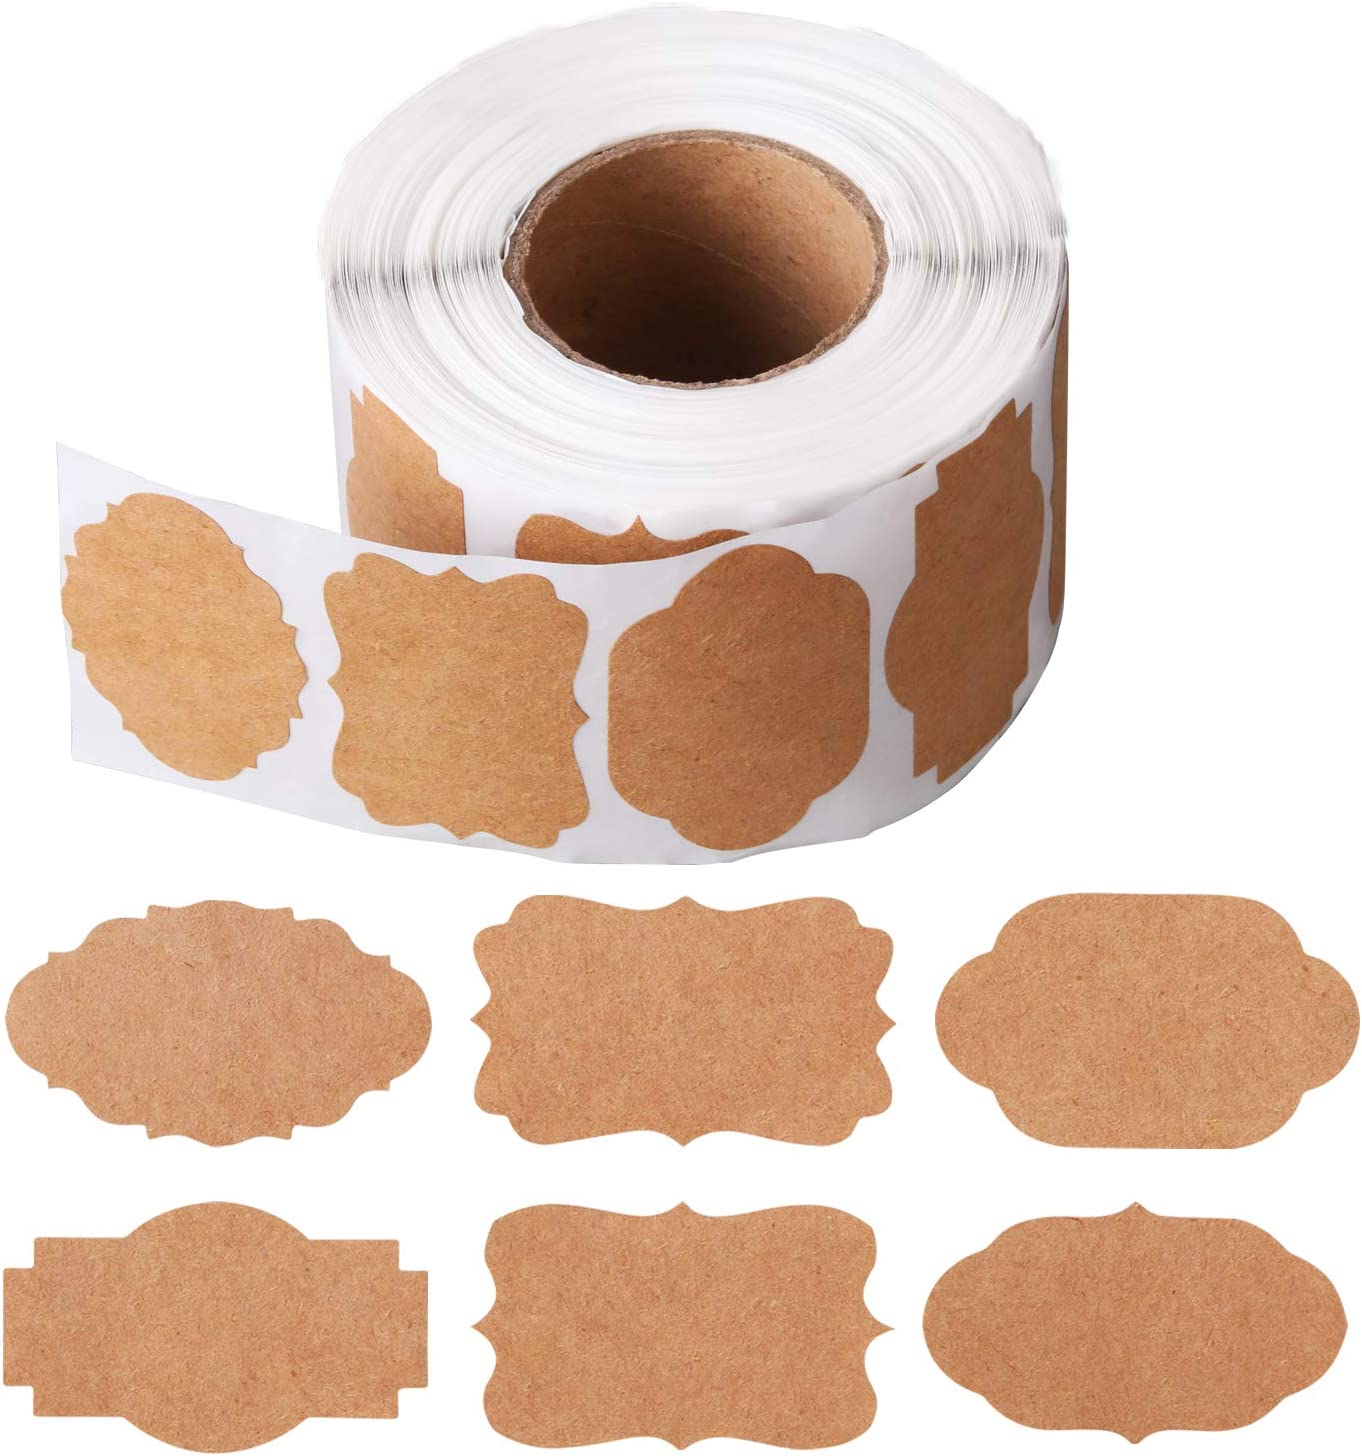 800 Pieces Kraft Stickers Labels Natural Brown Labels Christmas Gift Tags Labels Stickers Blank Write On Labels Holiday Present Label for Gifts Glass Bottles,1 Roll, 6 Styles 1.2 x 2 Inches